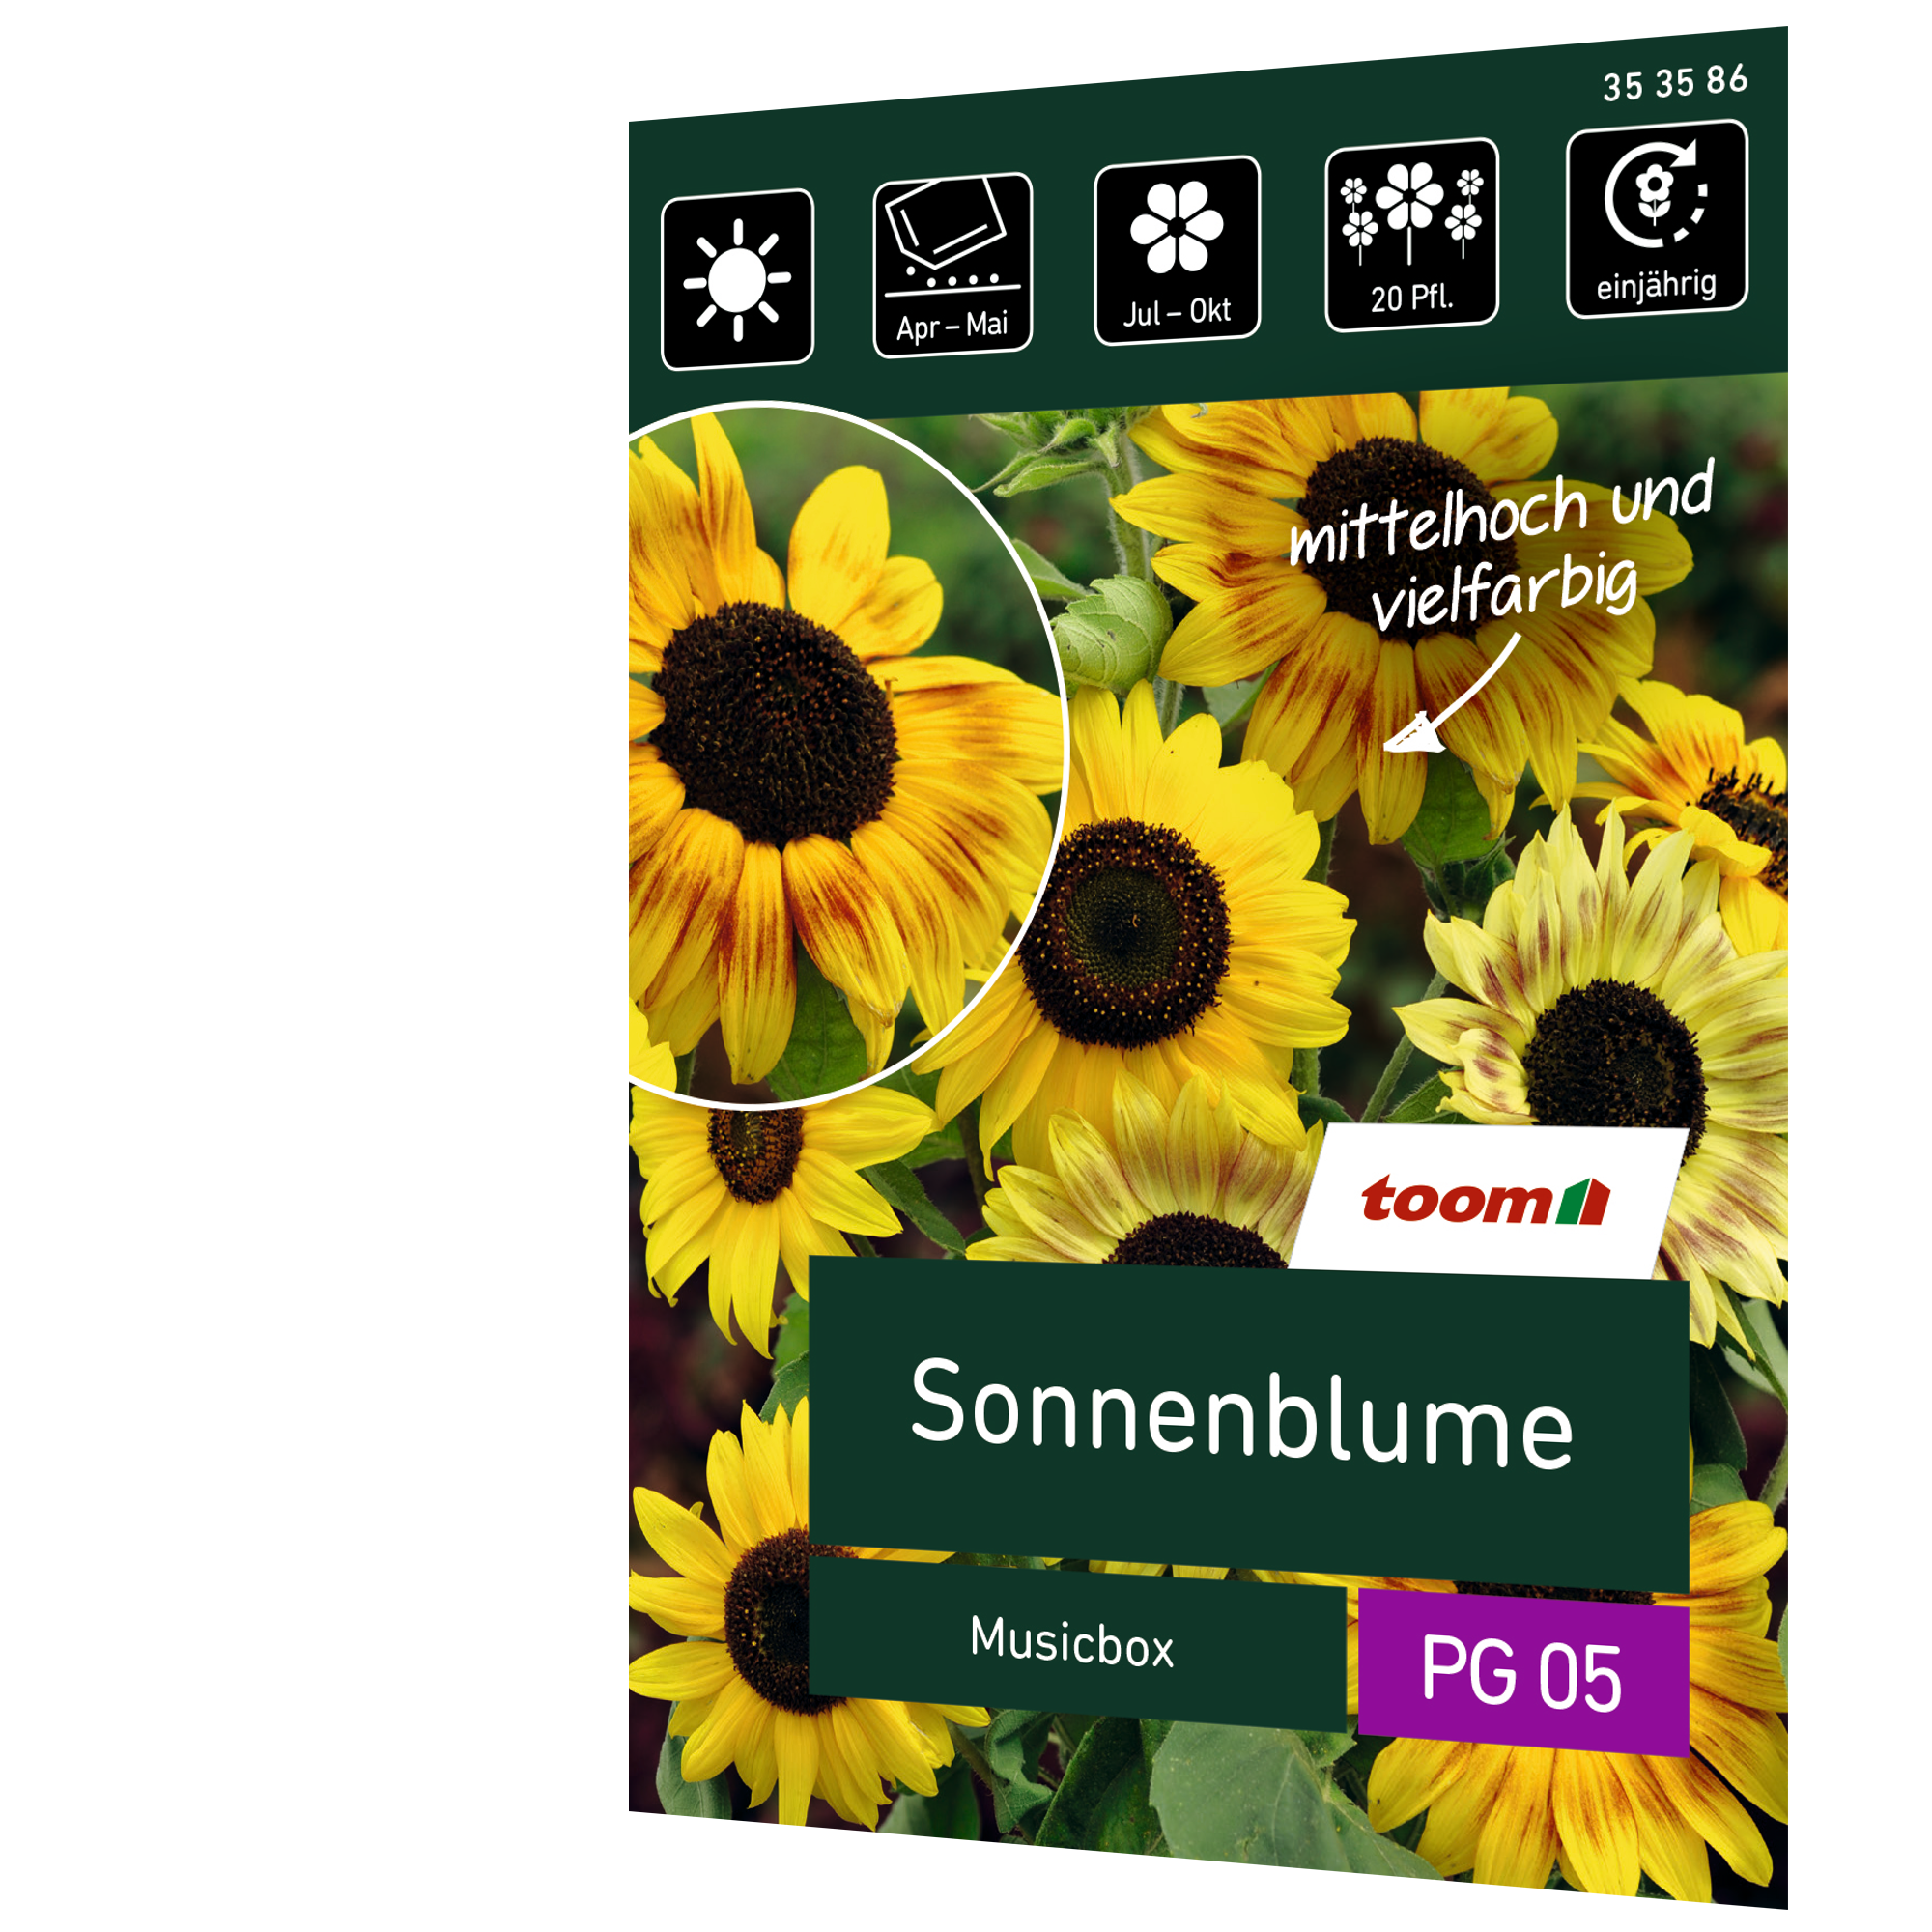 toom Sonnenblume 'Musicbox'